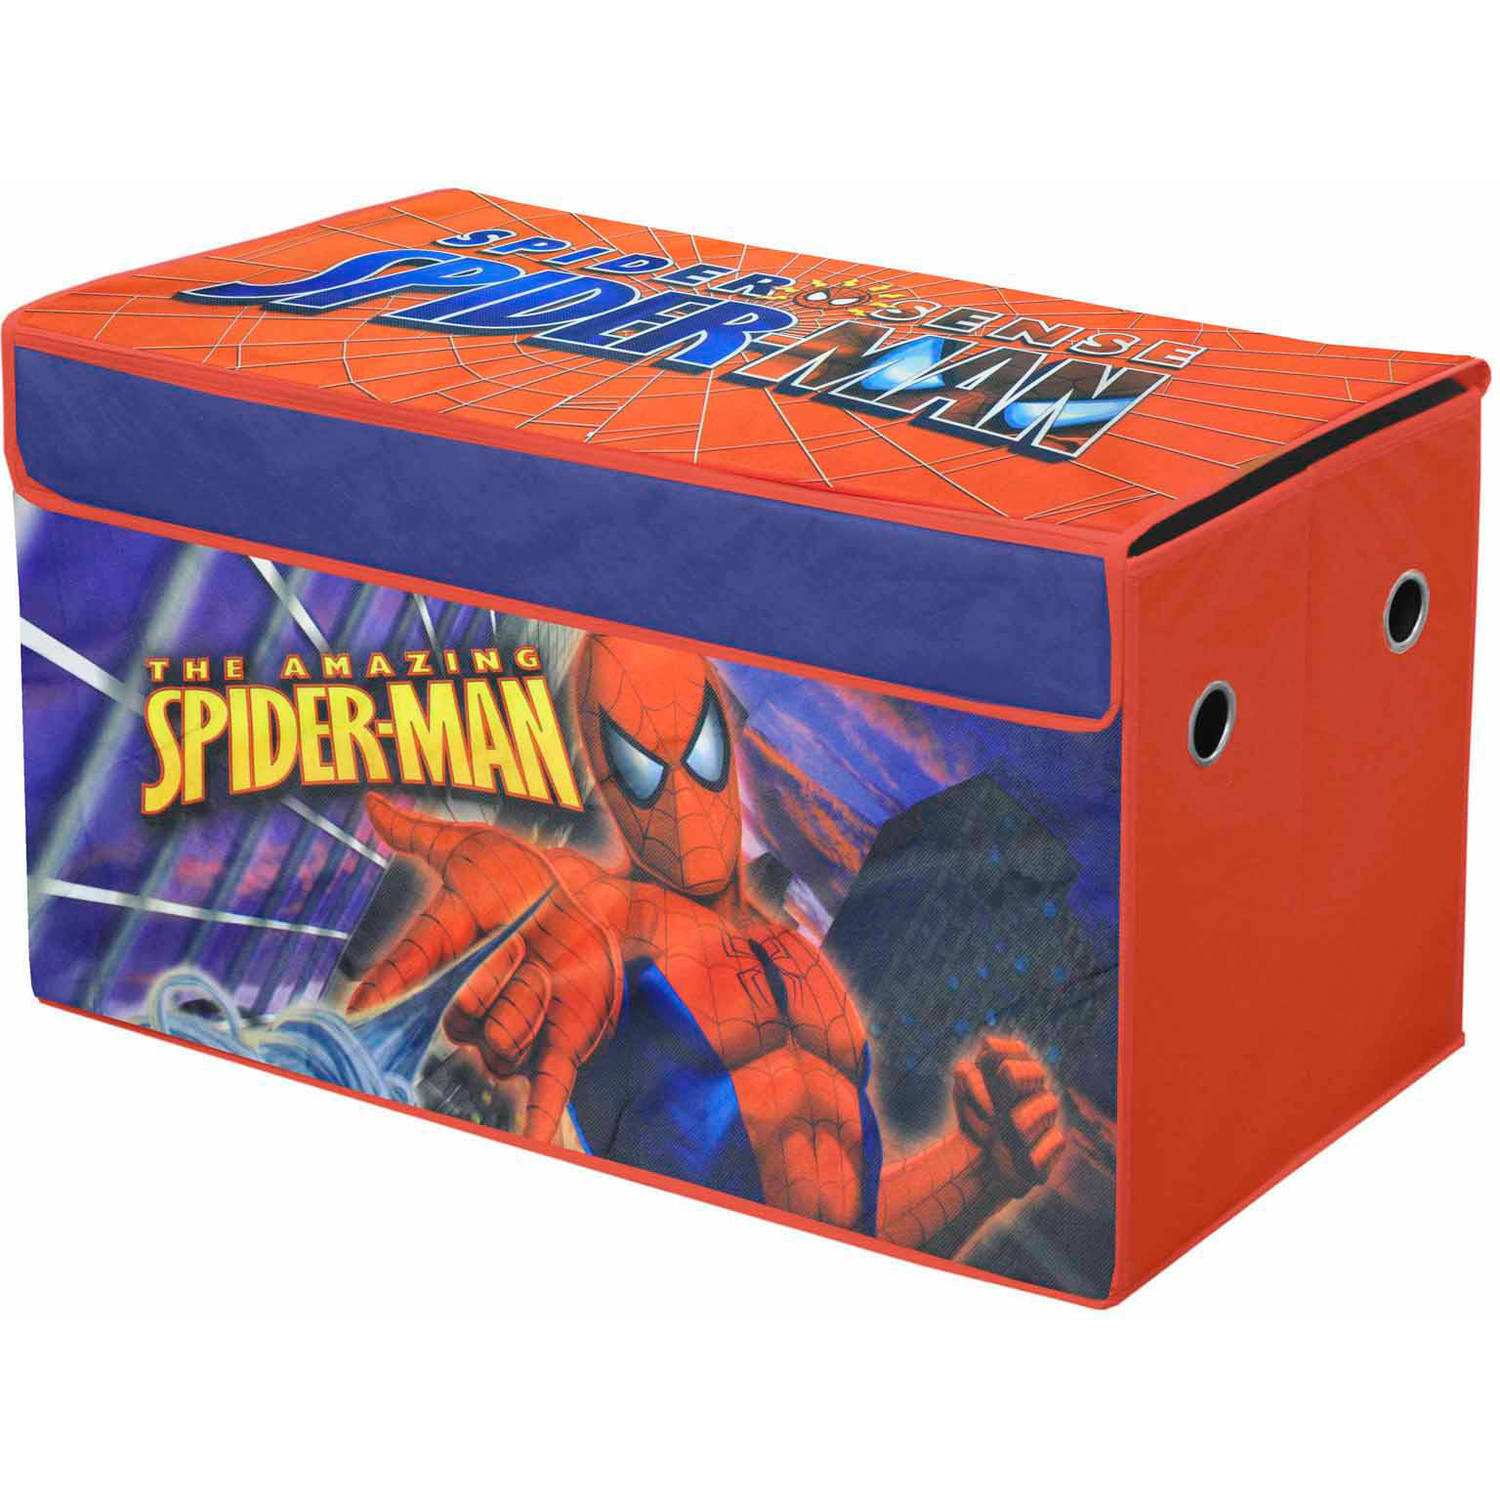 Spiderman Oversized Soft Collapsible Storage Toy Trunk by Idea Nuova